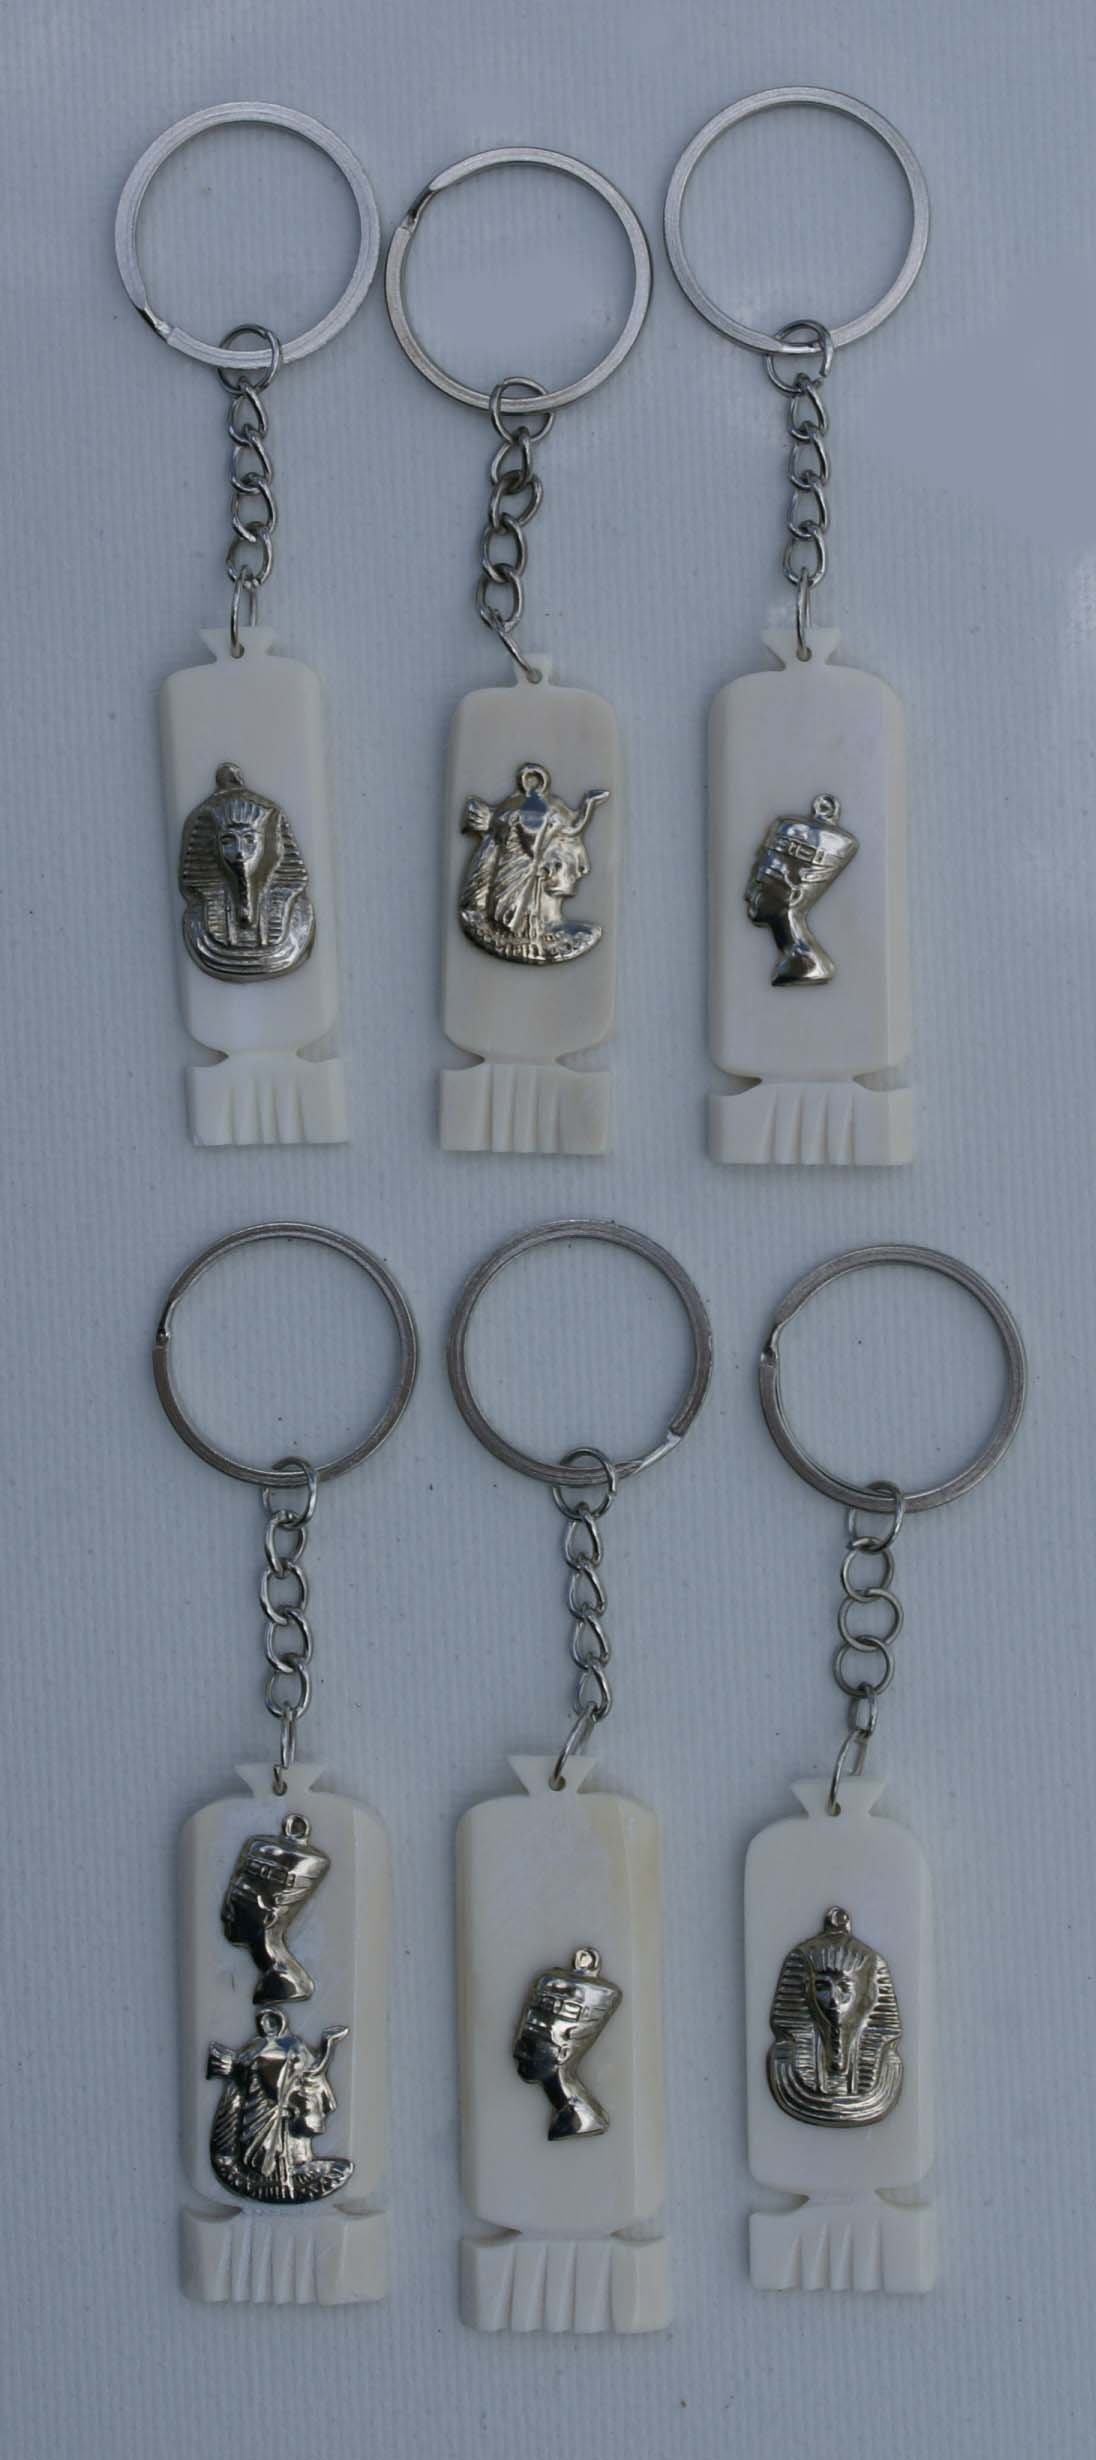 Lot 5 White Animal Bone Keychains Handmade in Egypt, Pharaonic Style with  Metal Decor